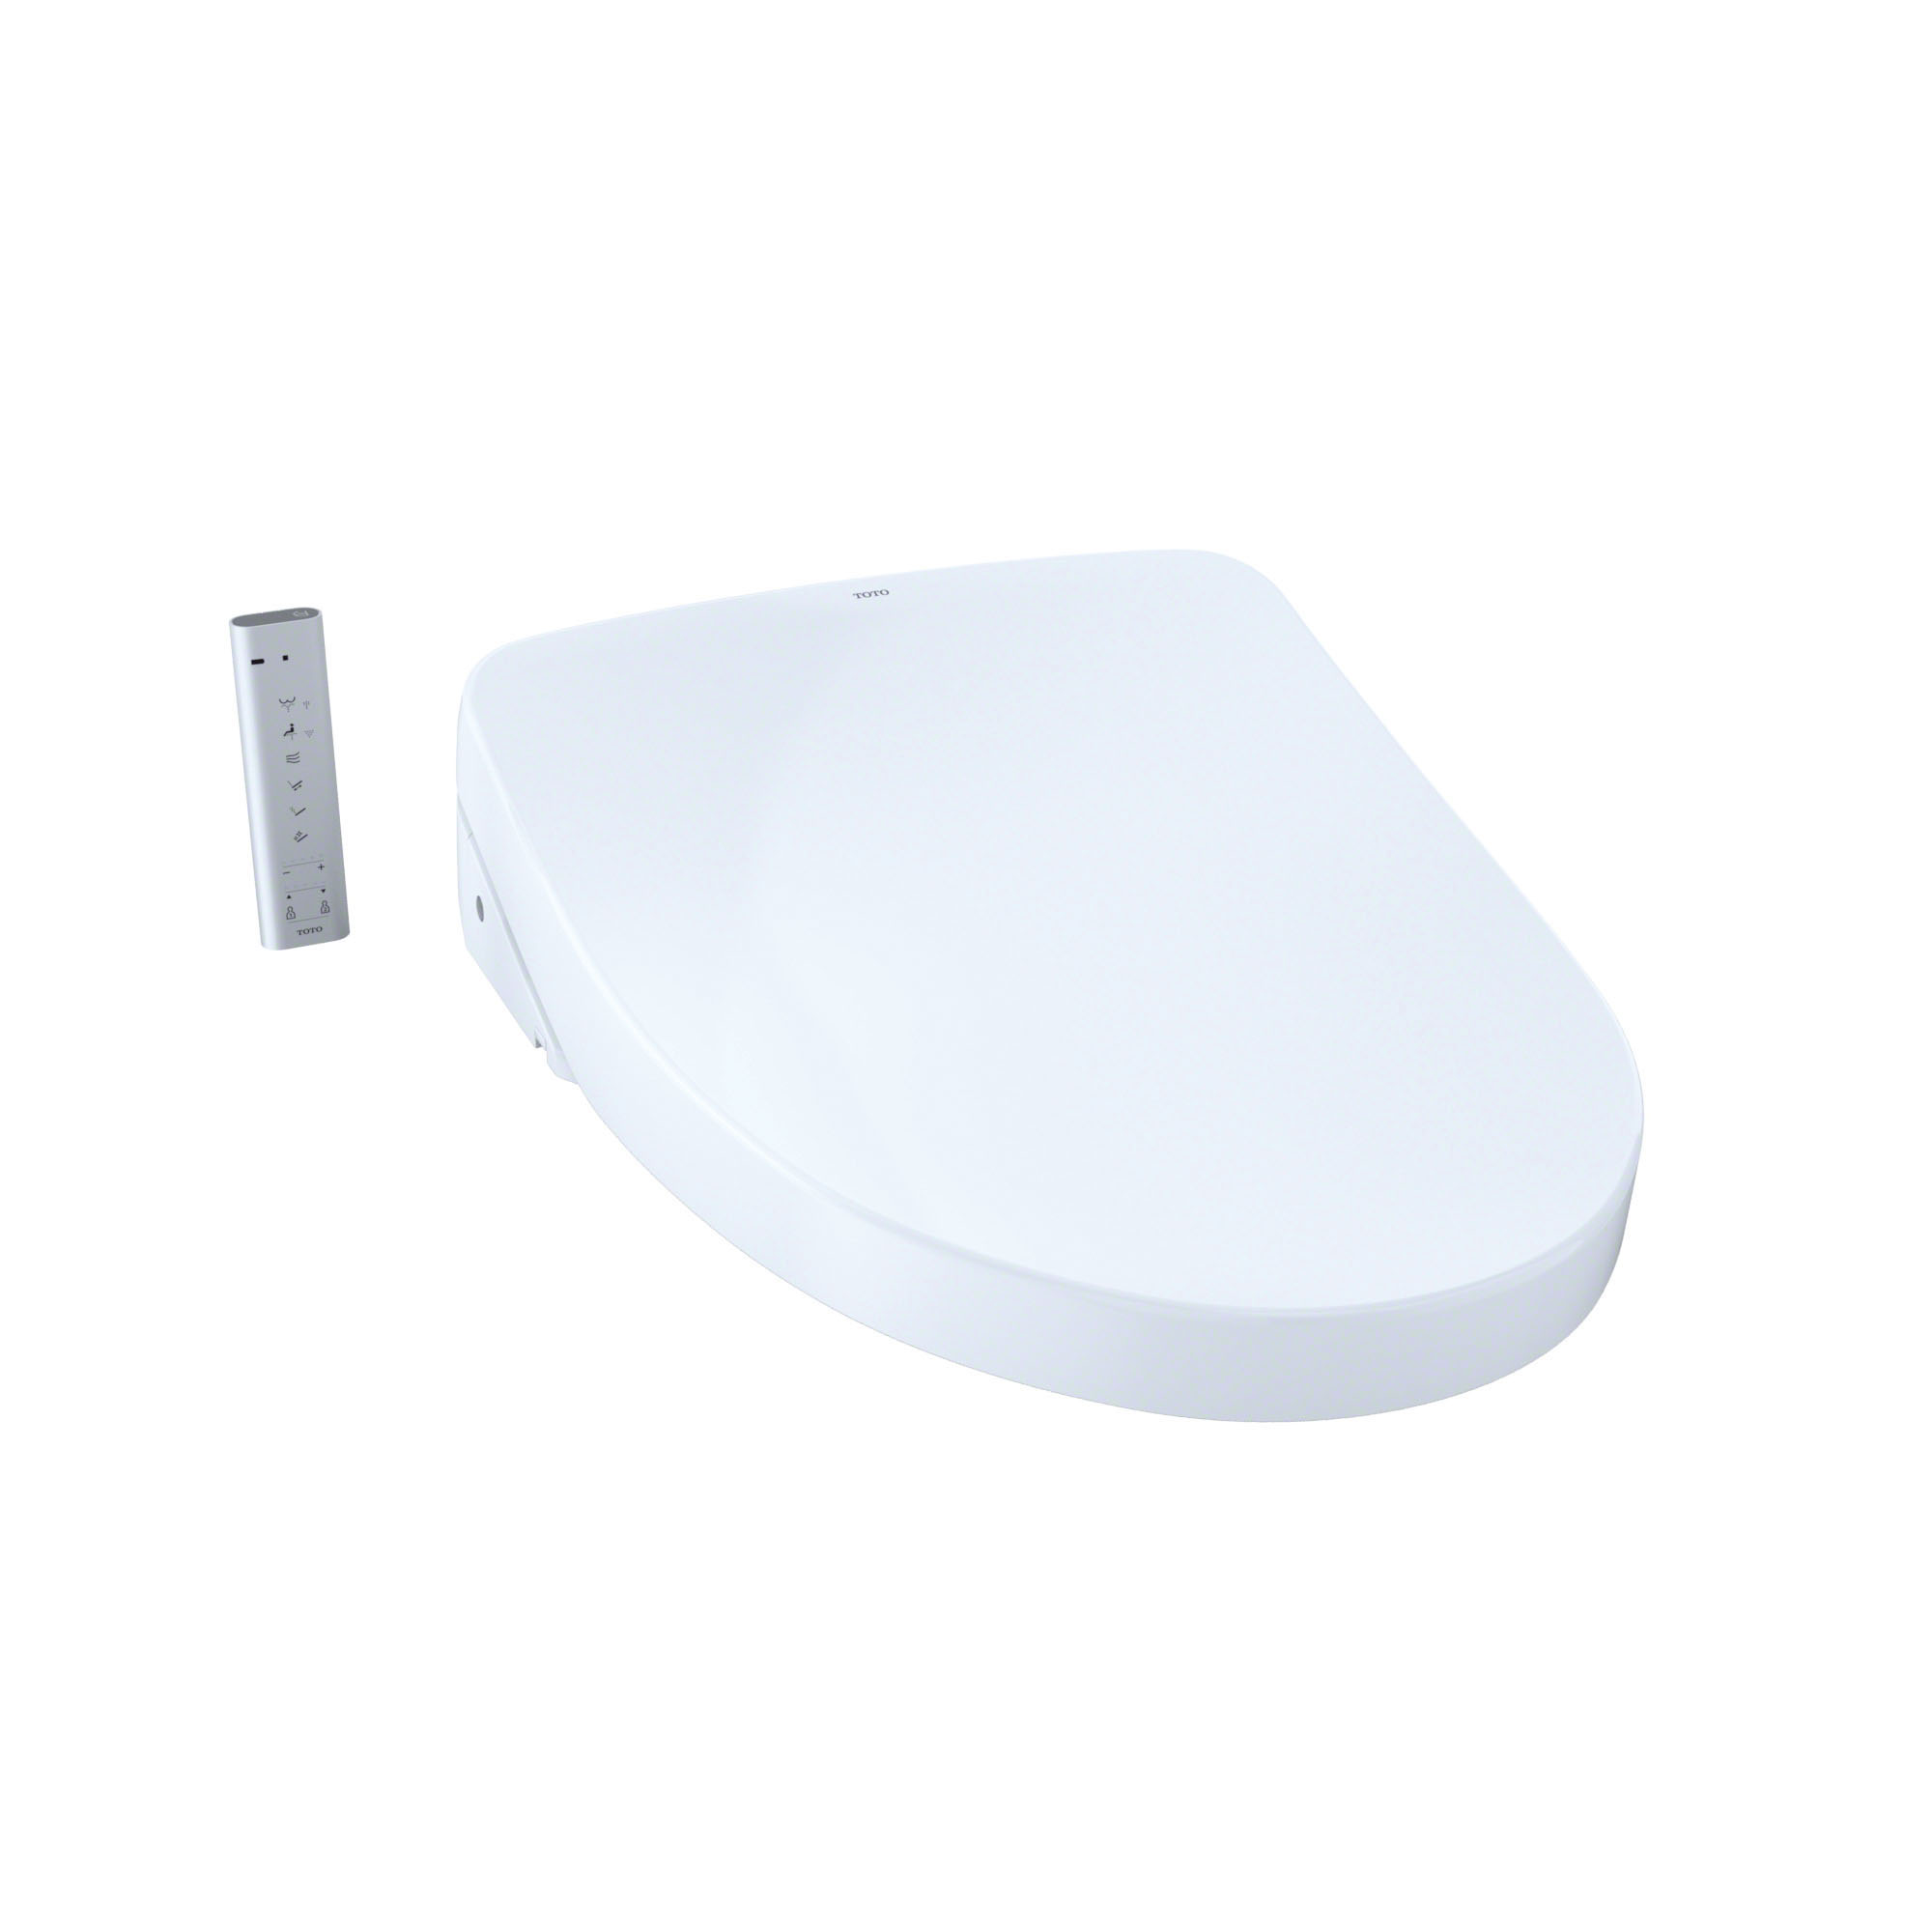 Toto® SW3056AT40#01 Contemporary Style Electronic Bidet Toilet Seat With EWATER+® Technology, WASHLET®, Elongated Bowl, Closed Front, Plastic, Cotton White, Import